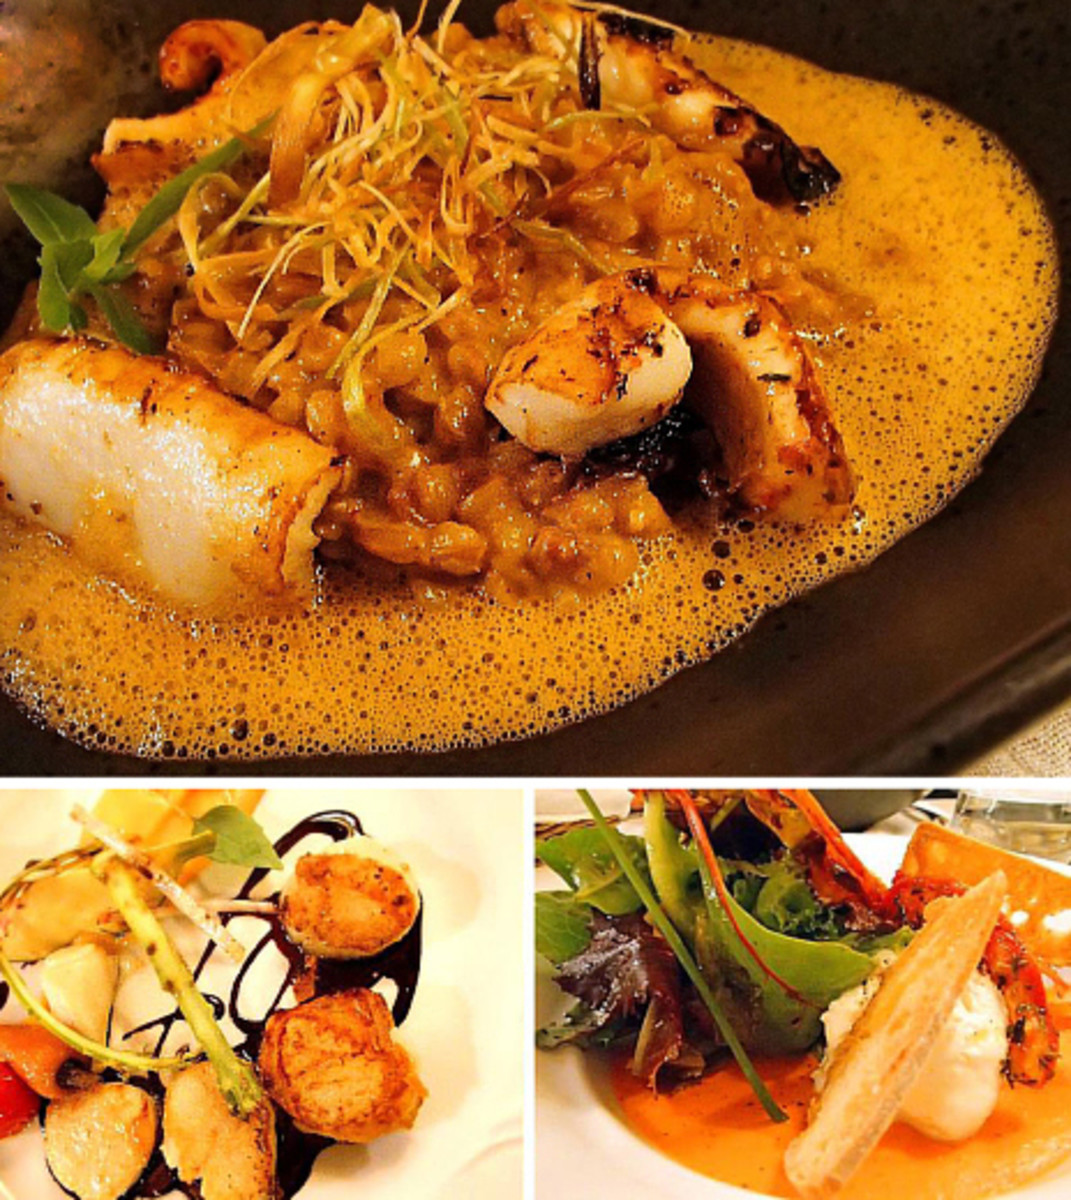 The impressive dishes that make L'Arome one of the best restaurants in Provence.